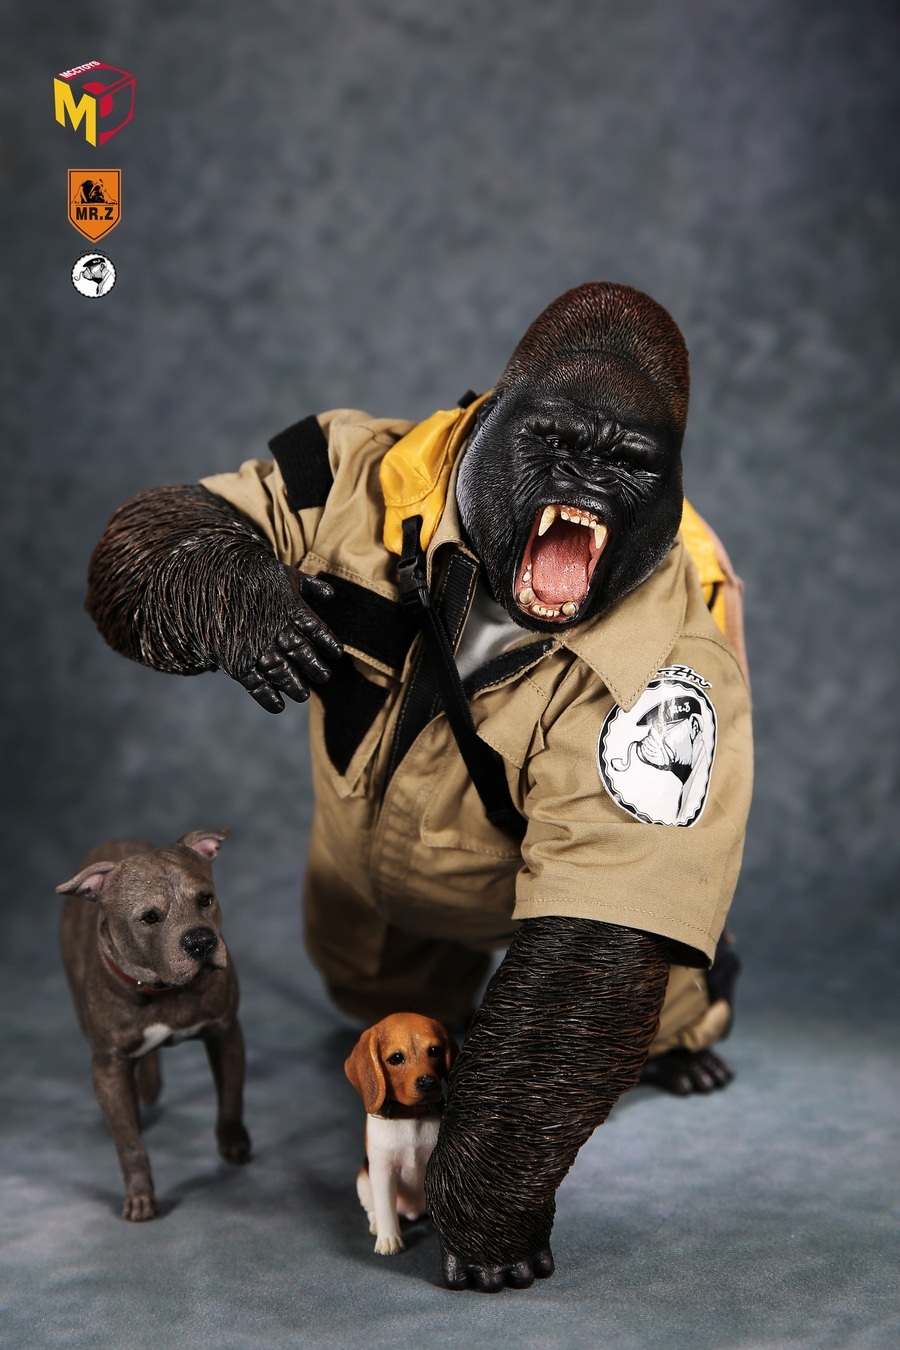 NEW PRODUCT: Mr.Z new product: 1/6 simulation animal model 31st bomb - African lowland gorilla (all 2 heads can be changed to upper limbs) 10065910